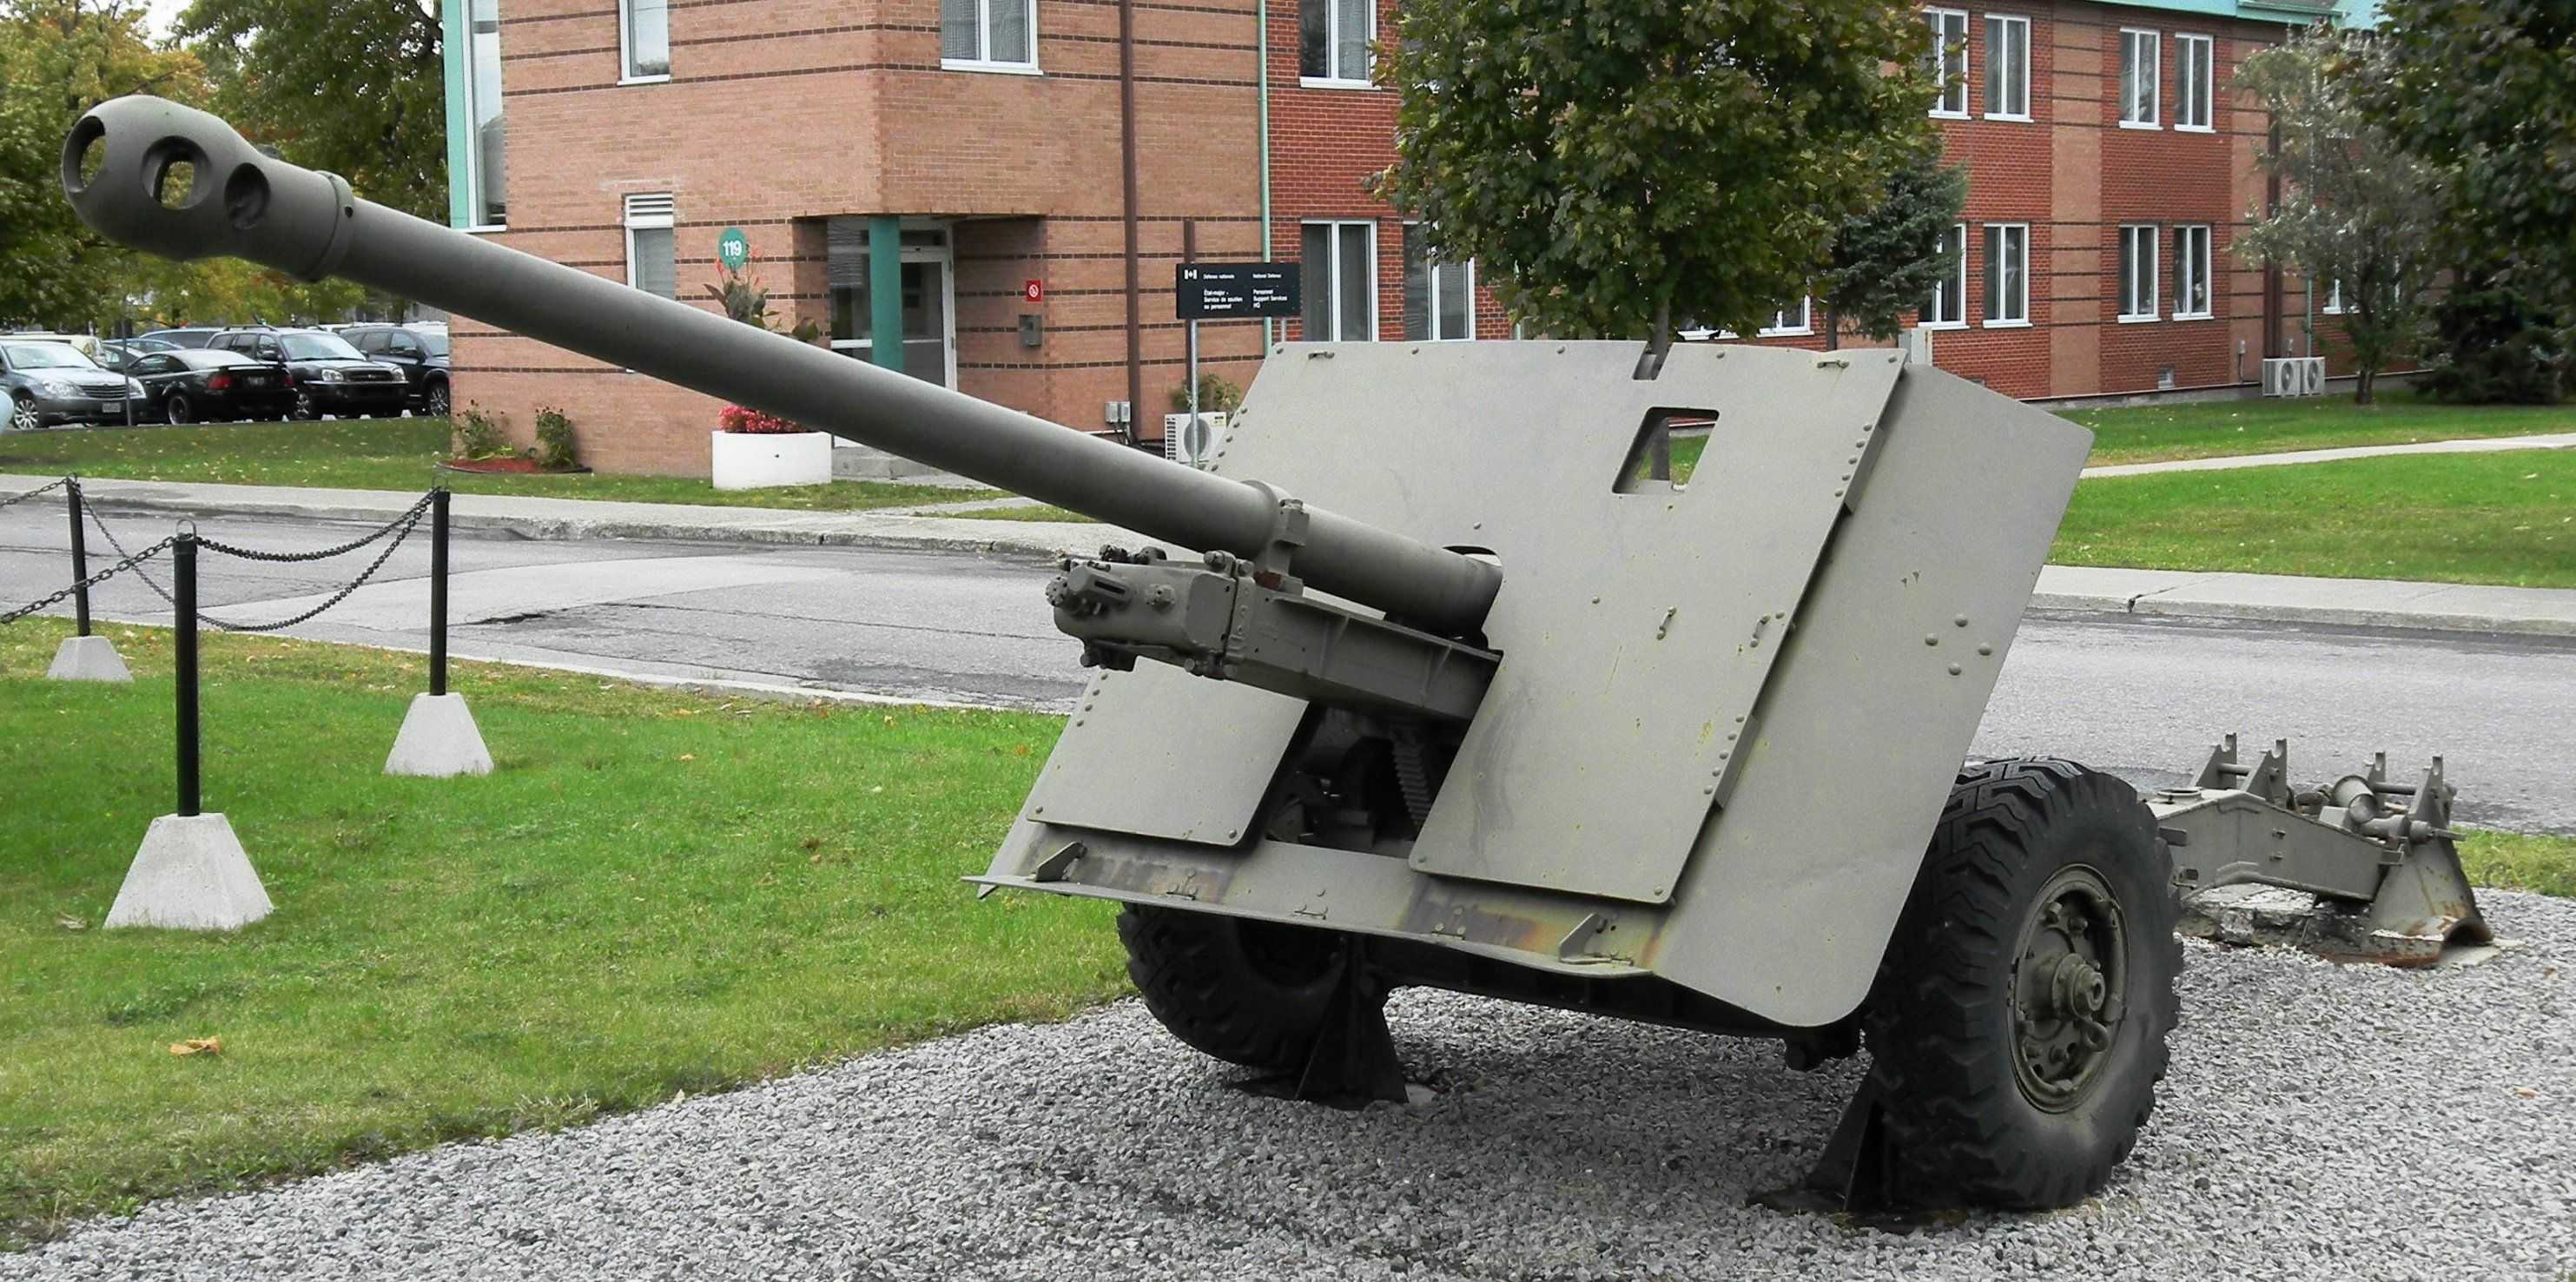 Ordnance_QF_17-pdr,_RCOC_Museum,_Montreal,_Quebec,_1_Oct_2012.JPG (2966×1476)